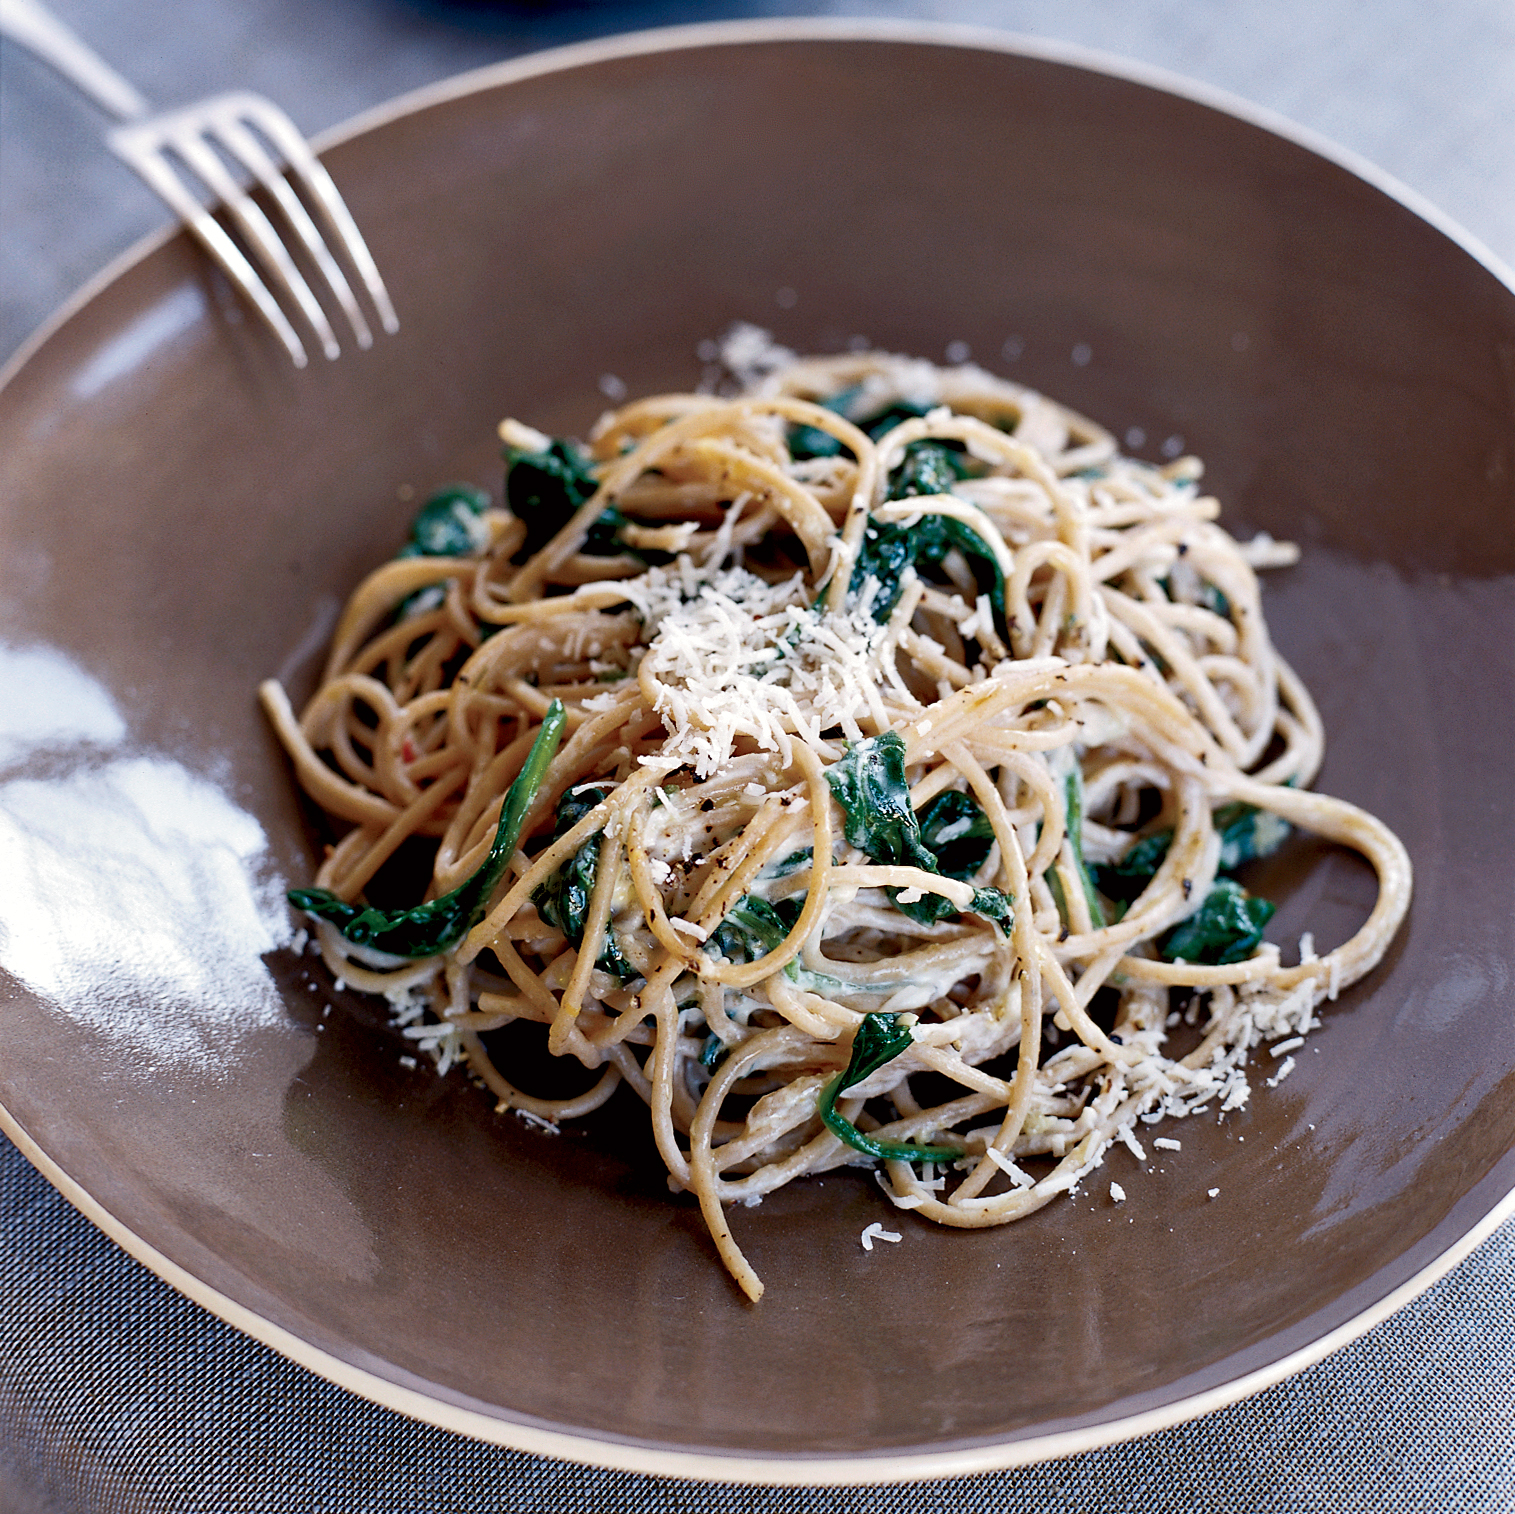 Healthy Pasta Recipes like Spaghetti with Lemon, Chile and Creamy Spinach